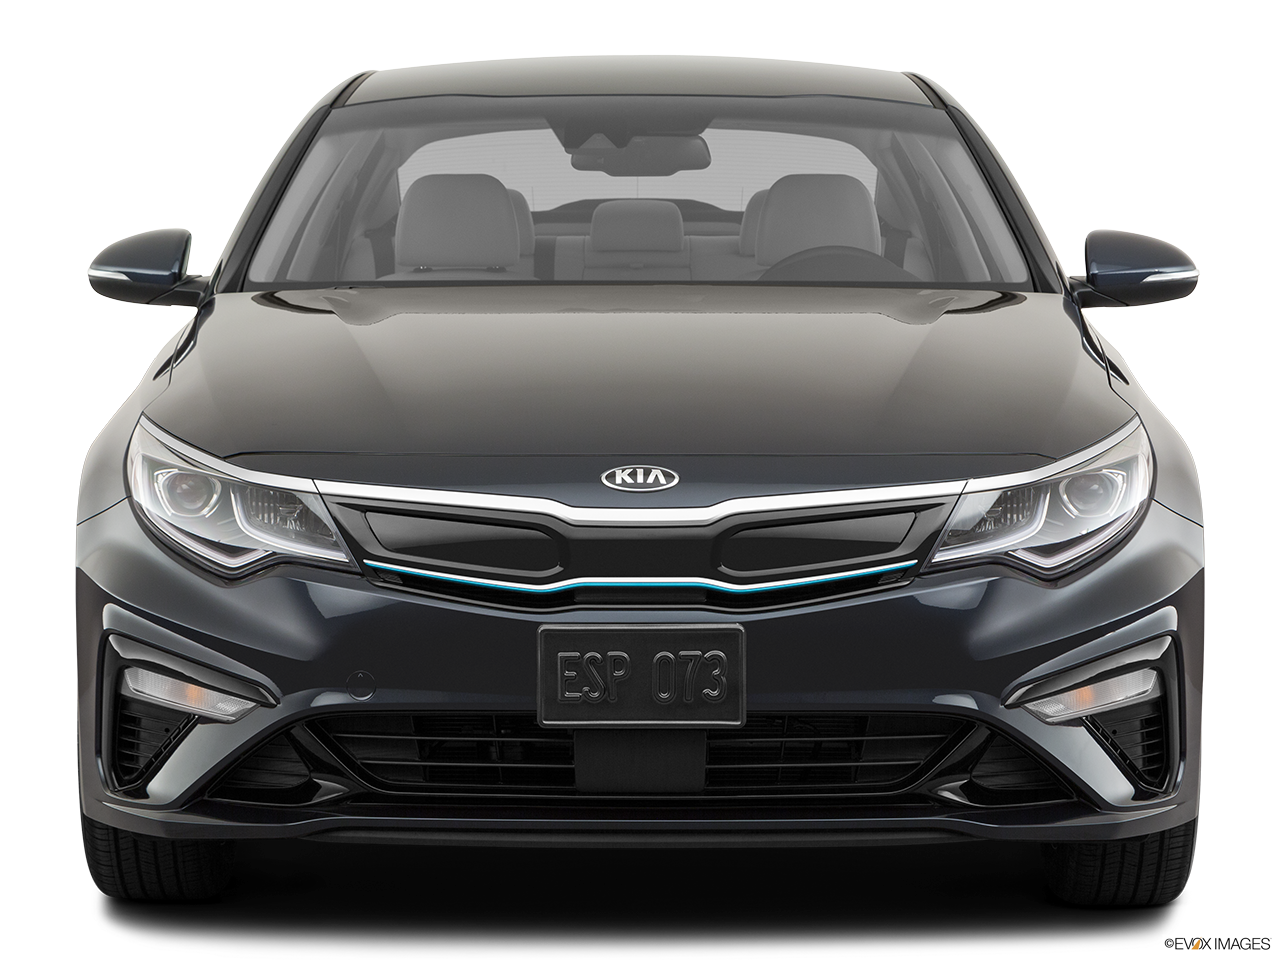 Front view of the Kia Optima PHEV